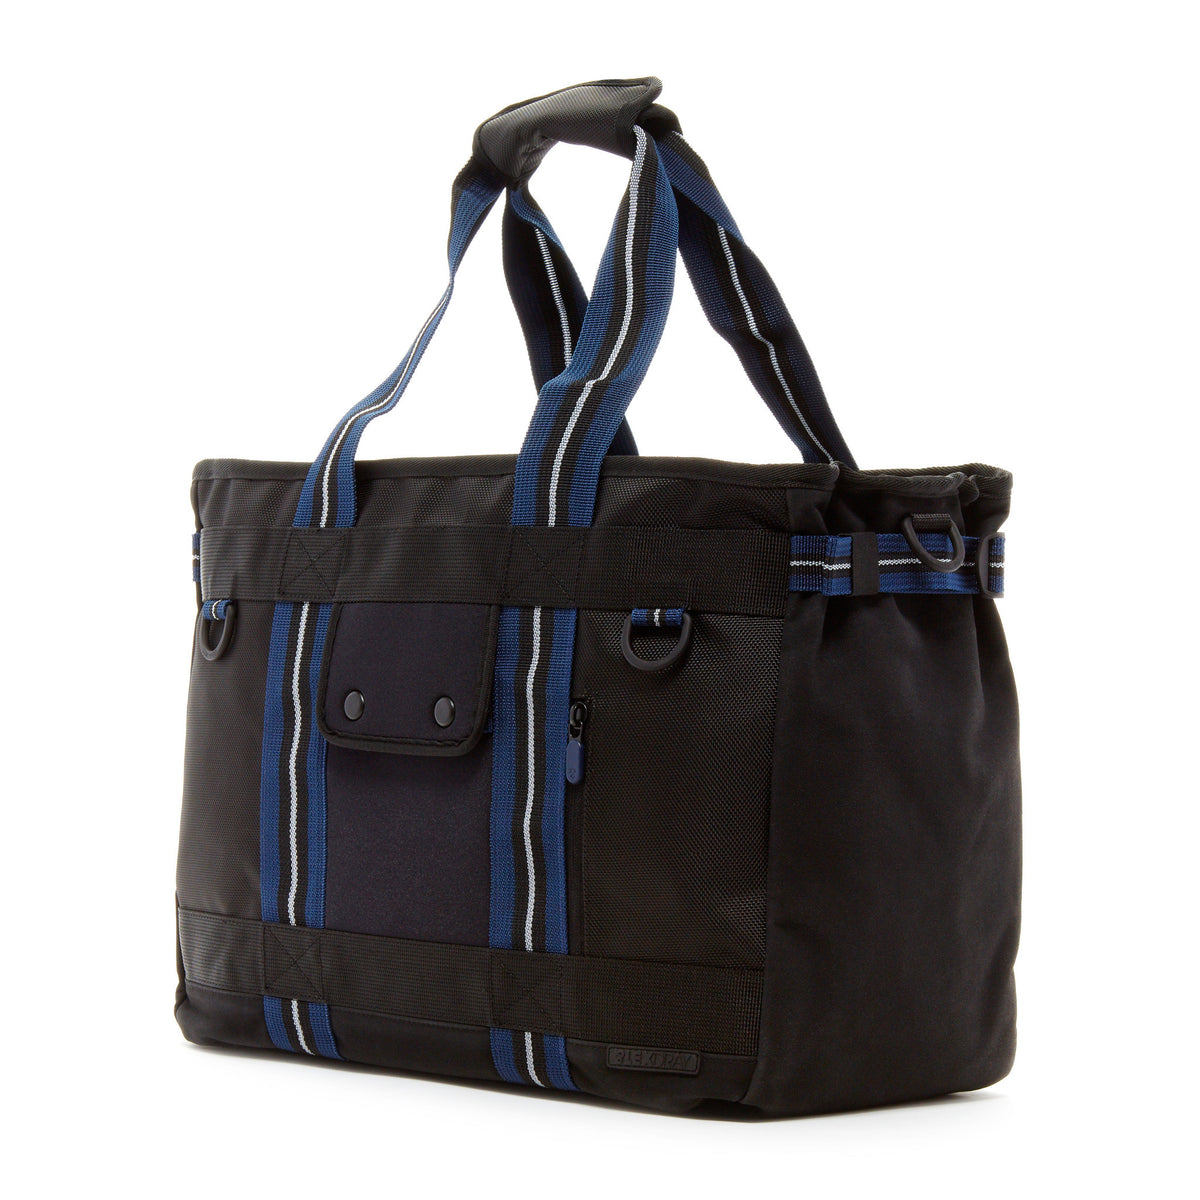 Lexdray: Shanghai Tote - Black / Navy (14103-BN-NT)